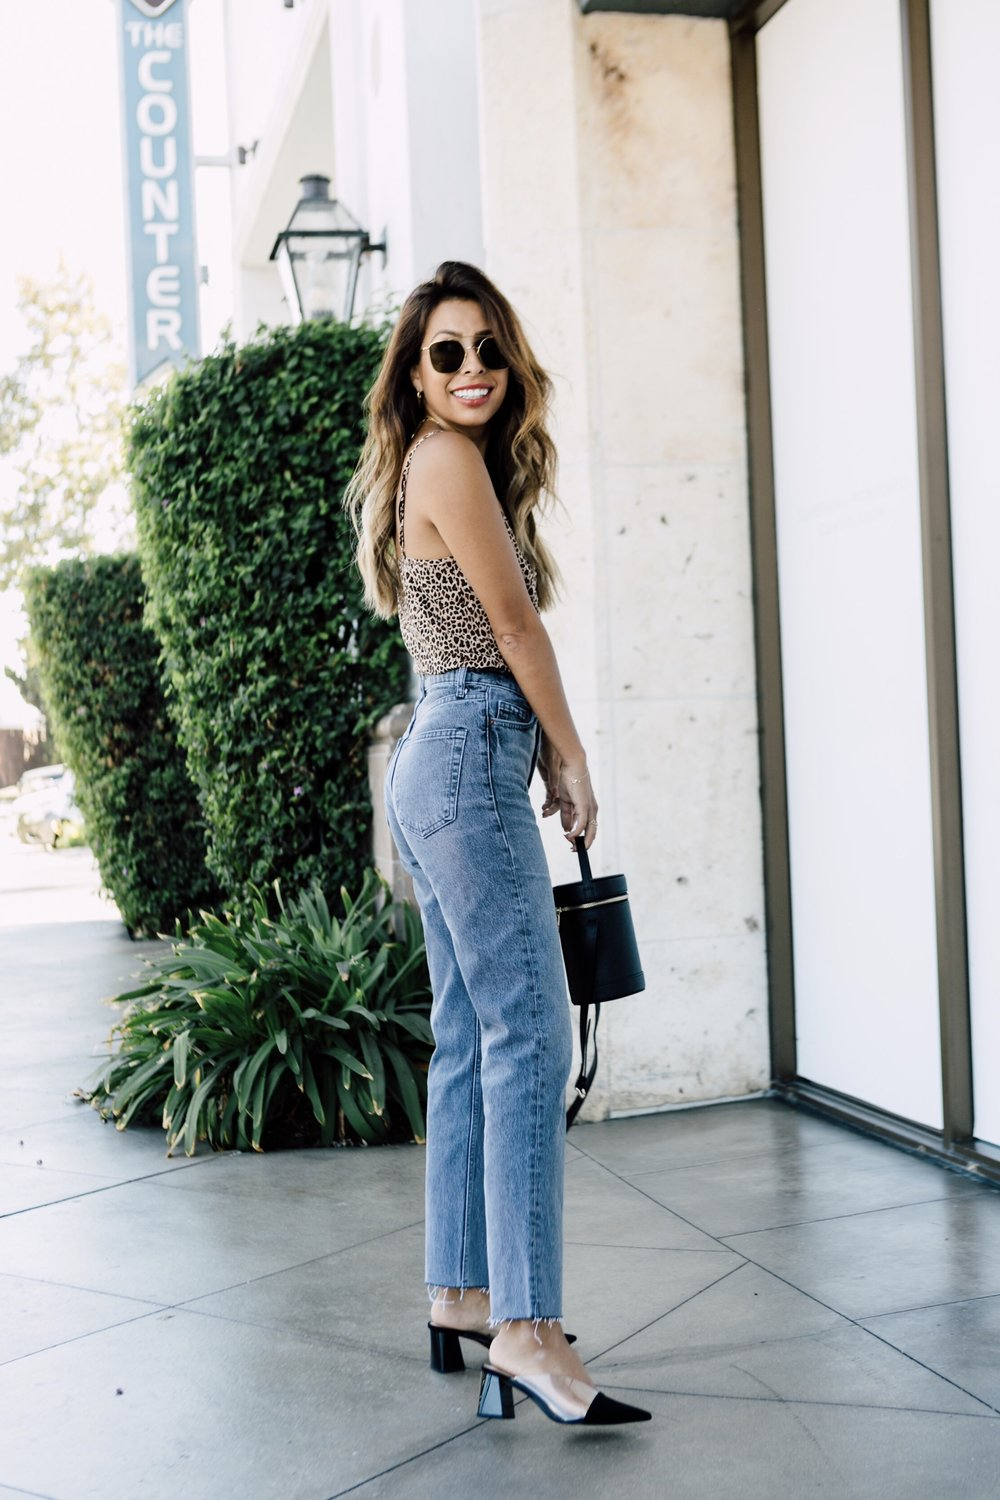 Fall outfit idea: Zara black mules and Mom jeans with leopard cami